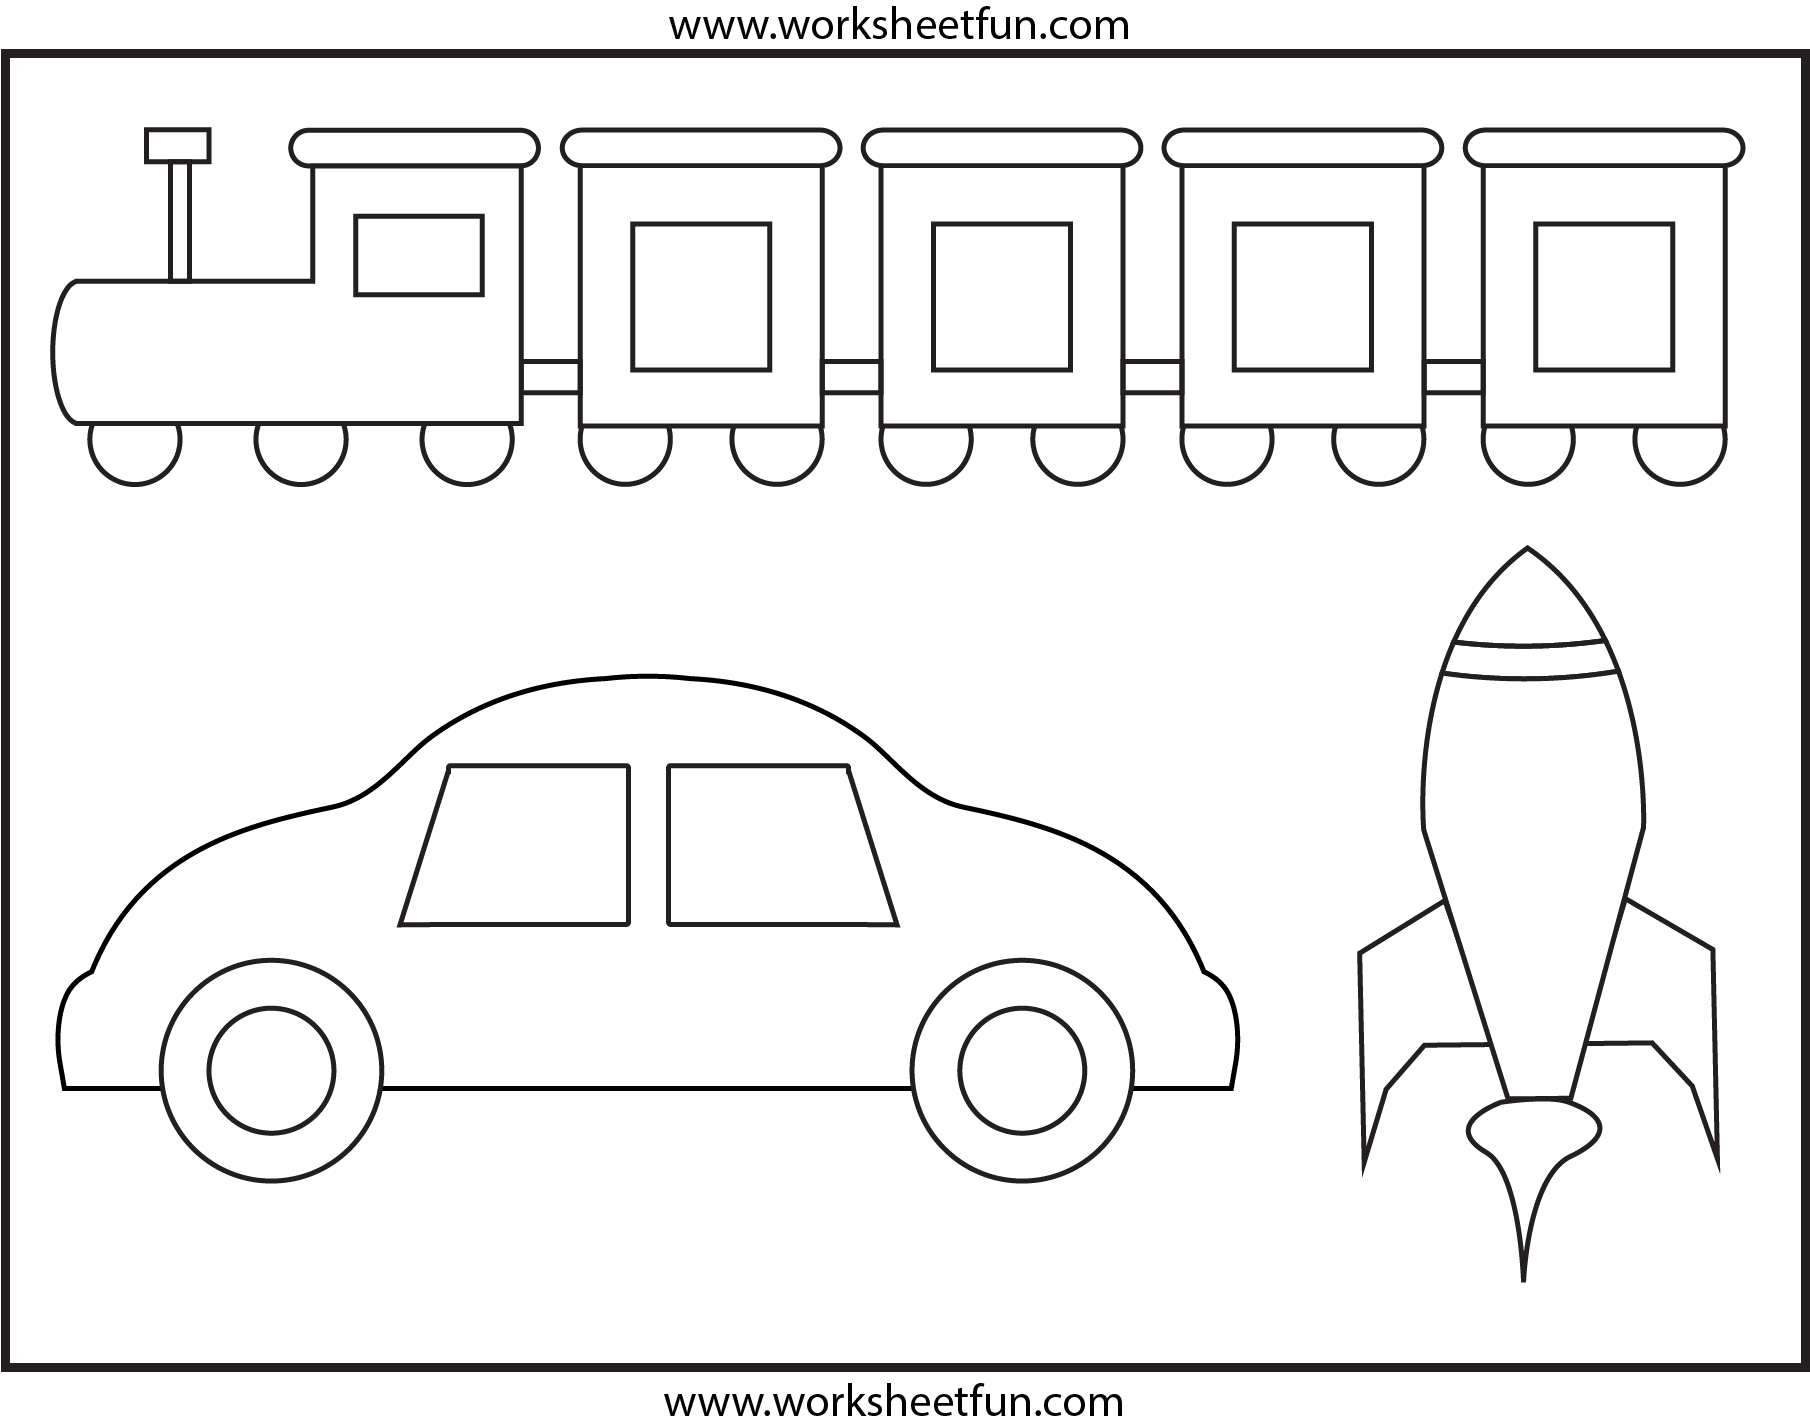 Coloring 1 Worksheet Free Printable Worksheets Worksheetfun